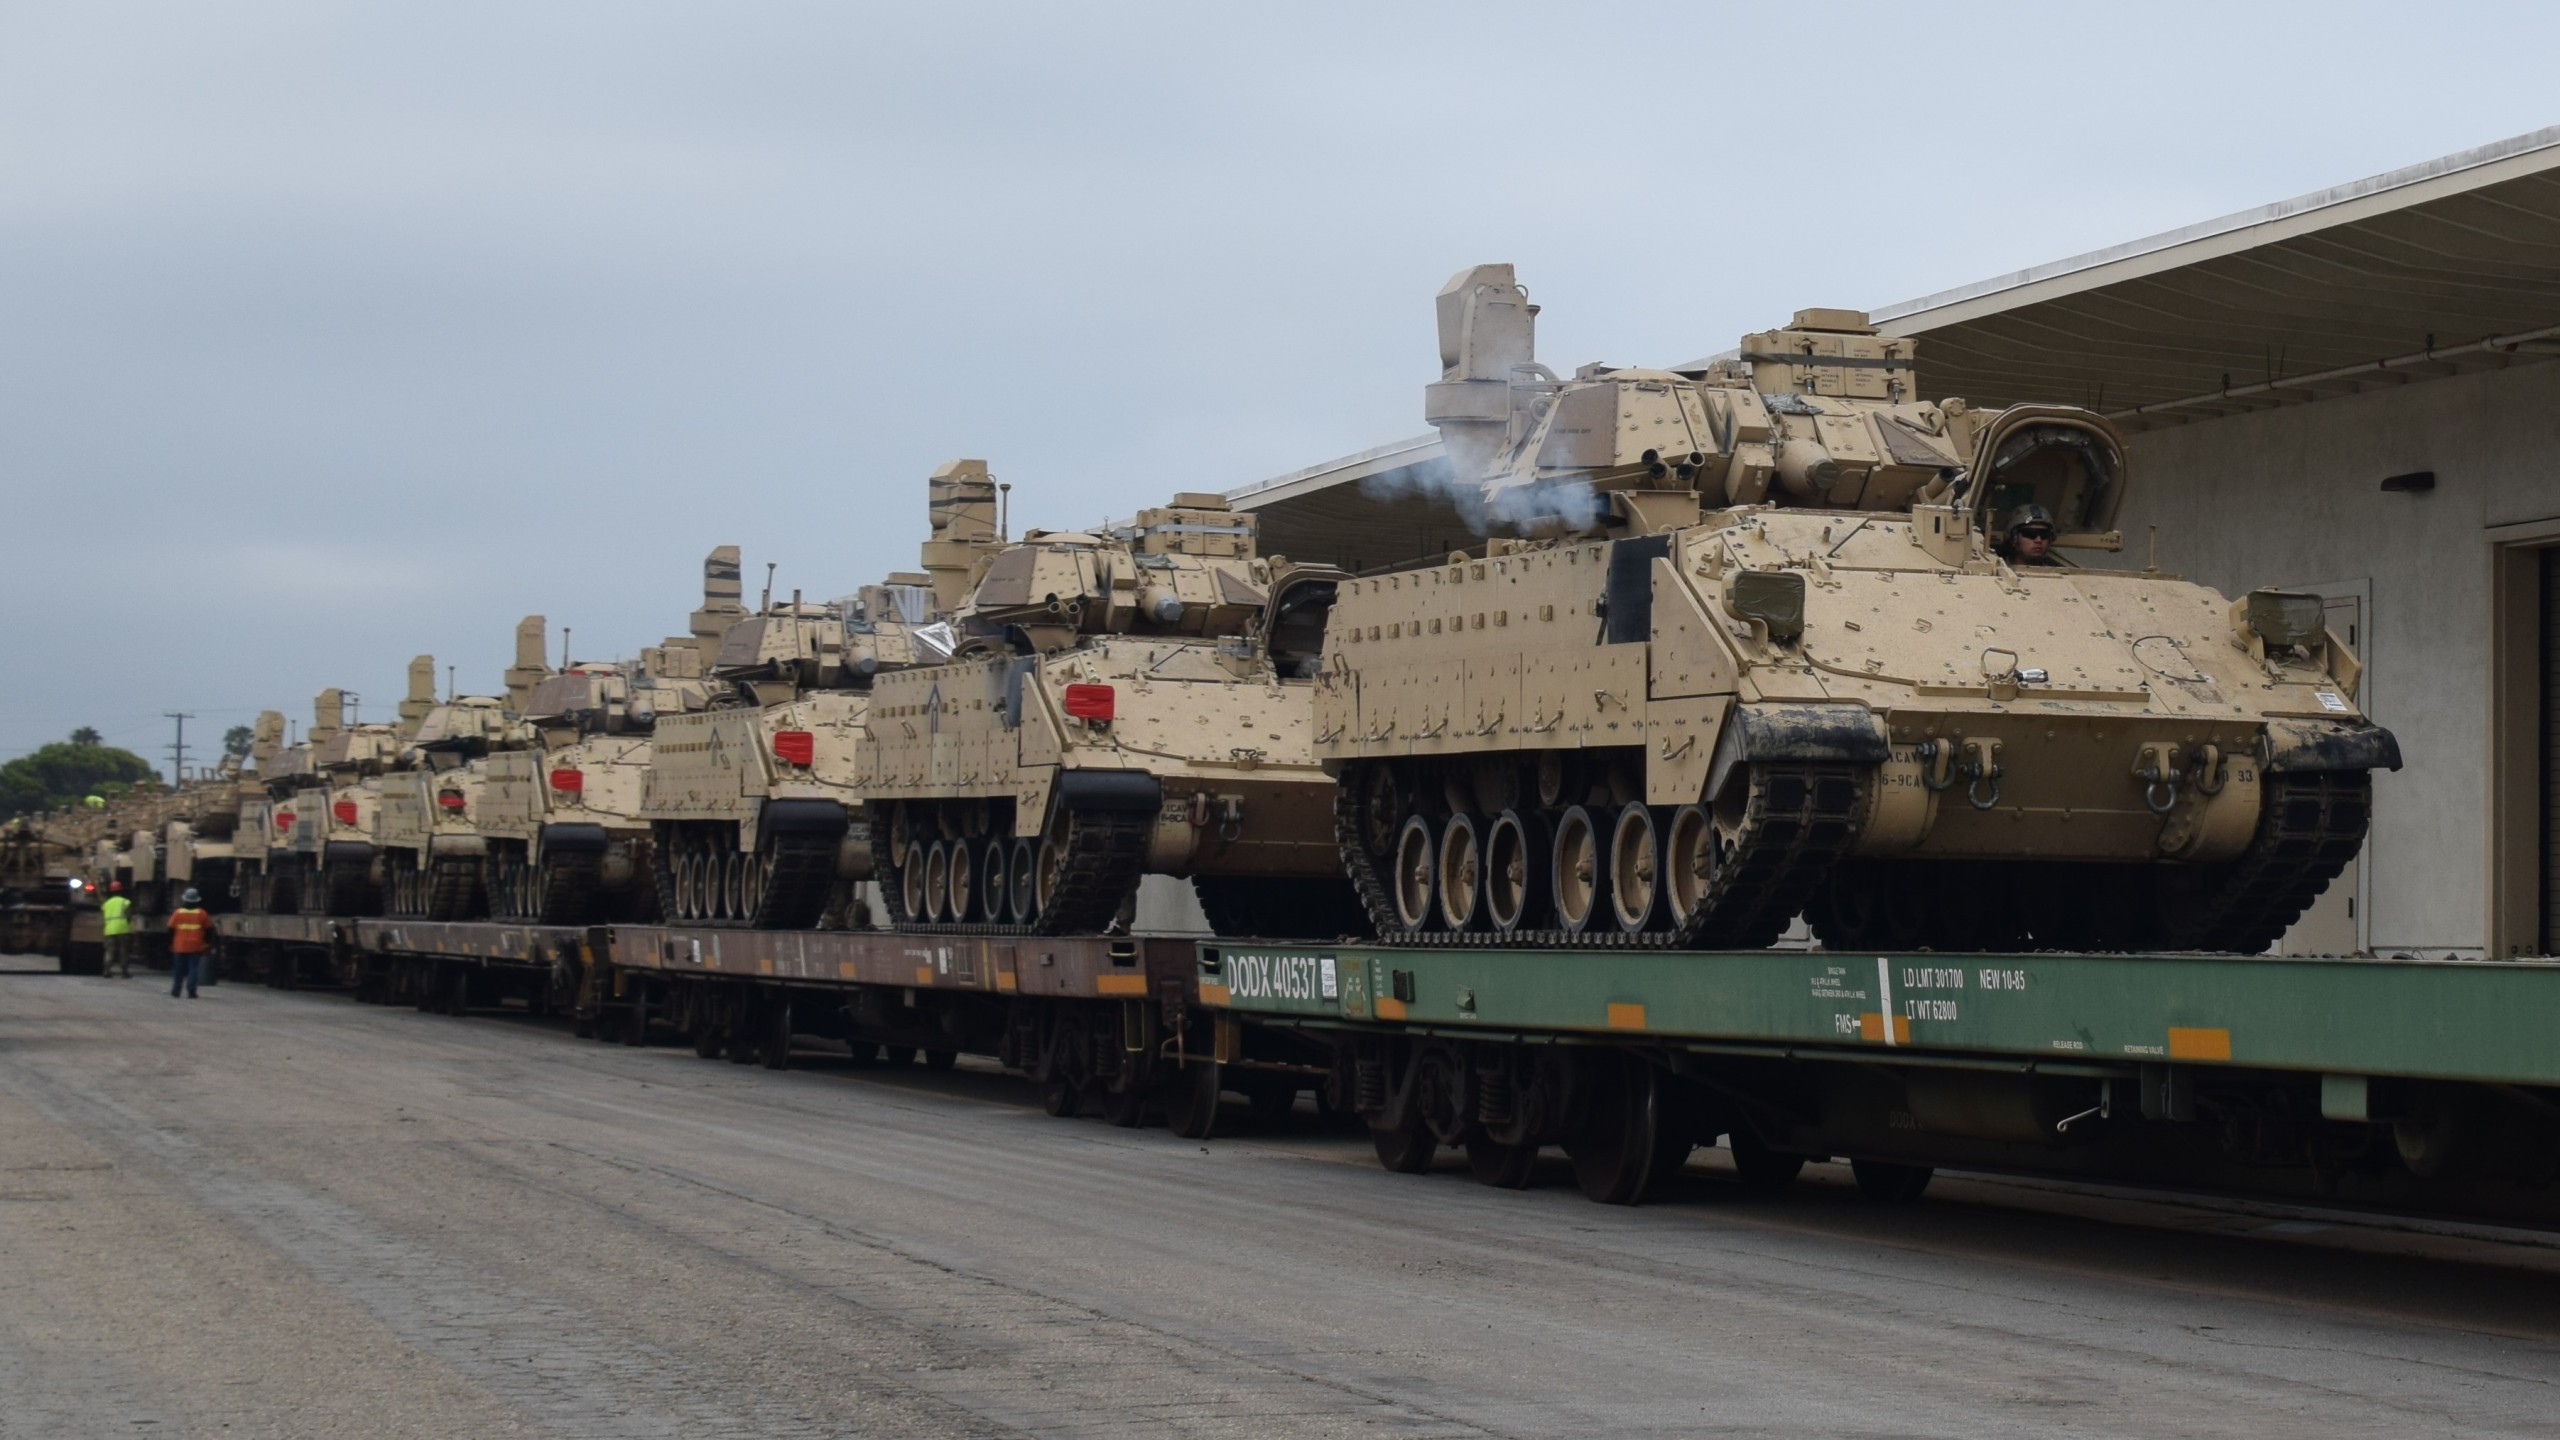 A photo shared by Naval Base Ventura County shows tanks being hauled on a train on March 24, 2020.